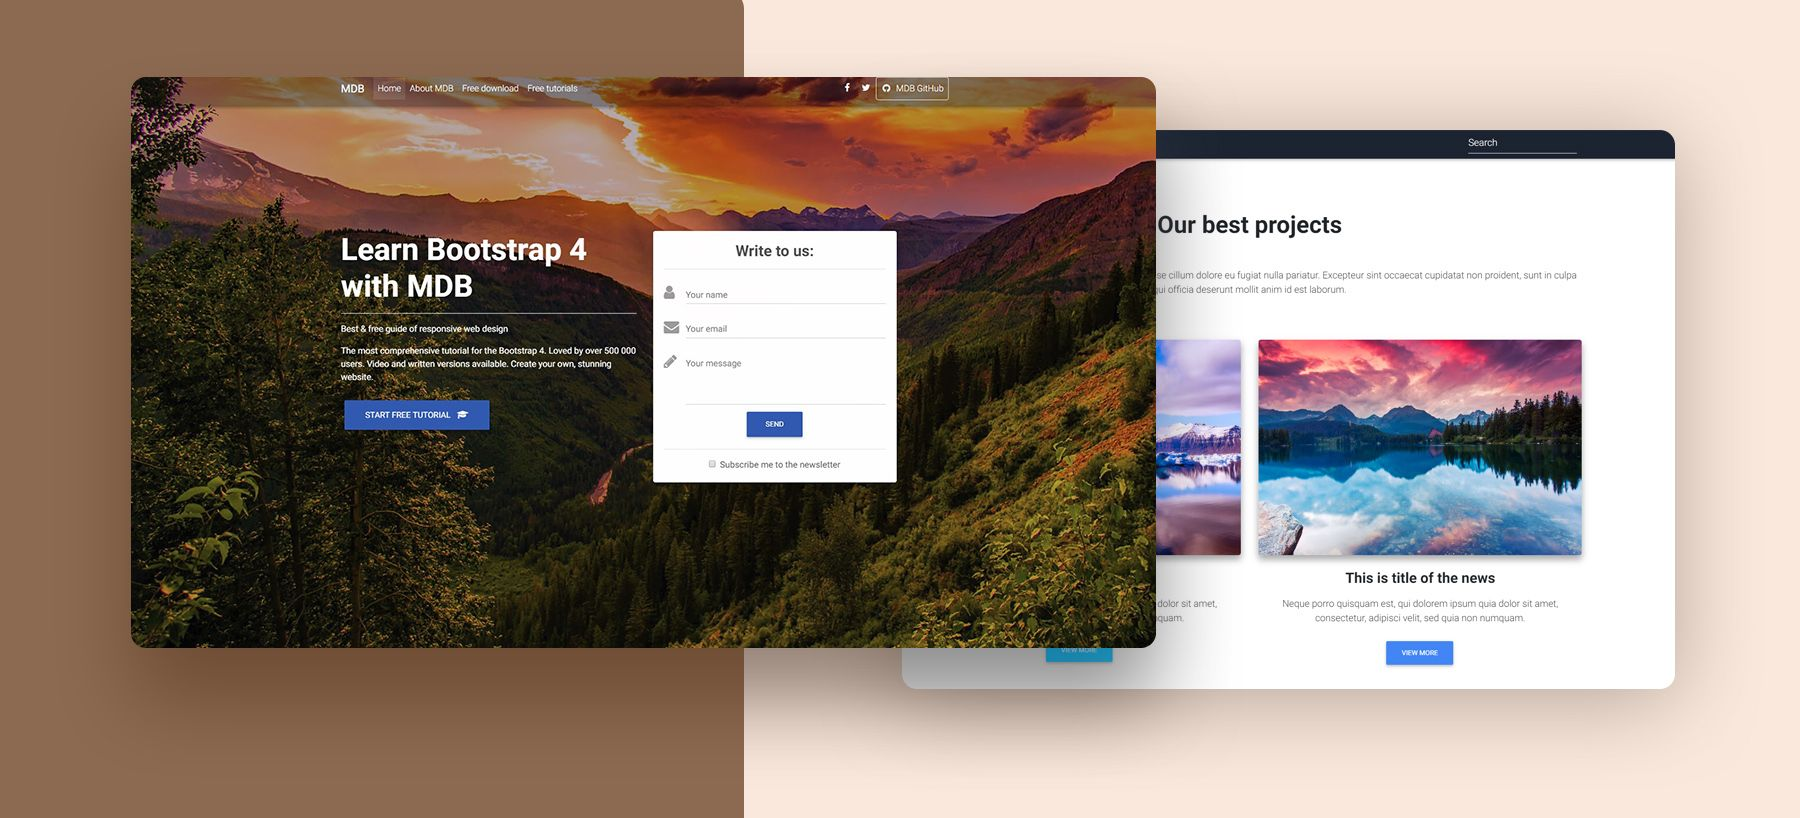 Landing Page Template - Bootstrap 4 & Material Design